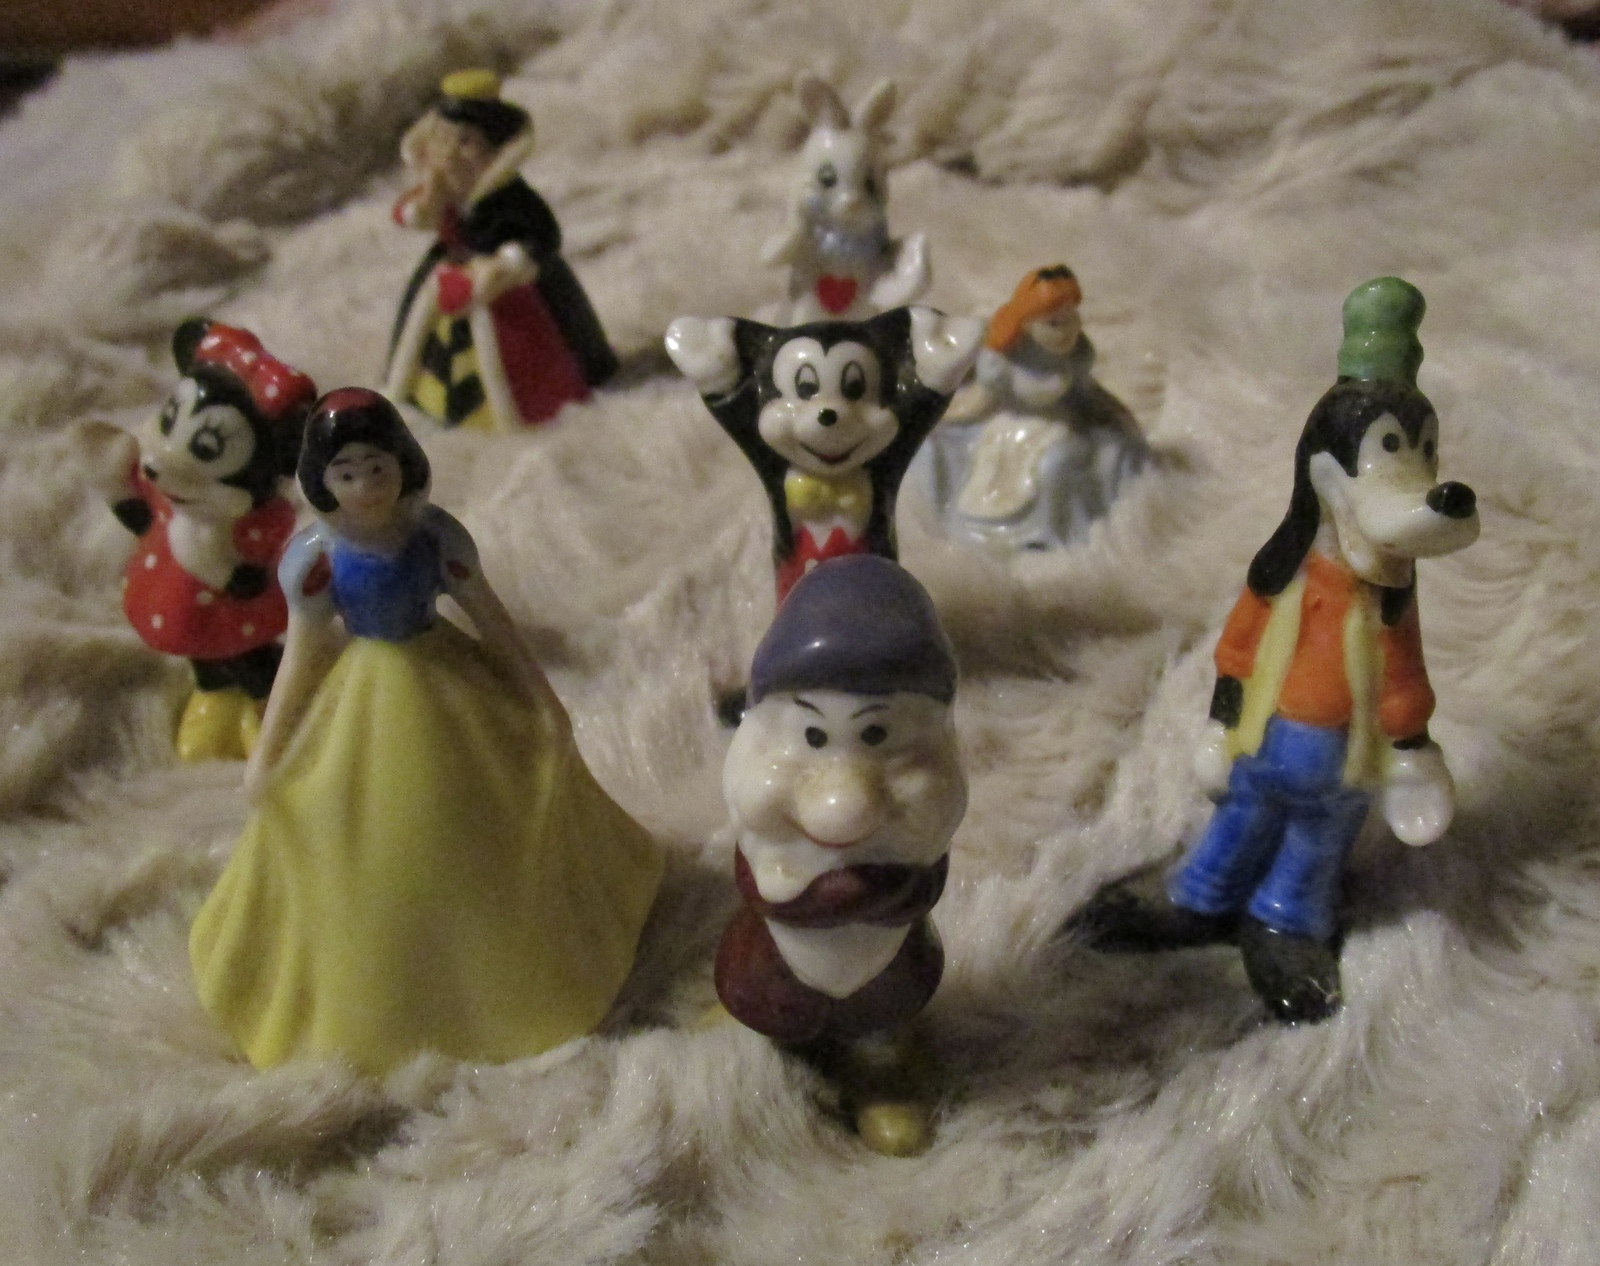 8 SMALL DISNEY MICKEY MINNIE MOUSE GOOFY ALICE IN WONDERLAND + FIGURINES TAIWAN